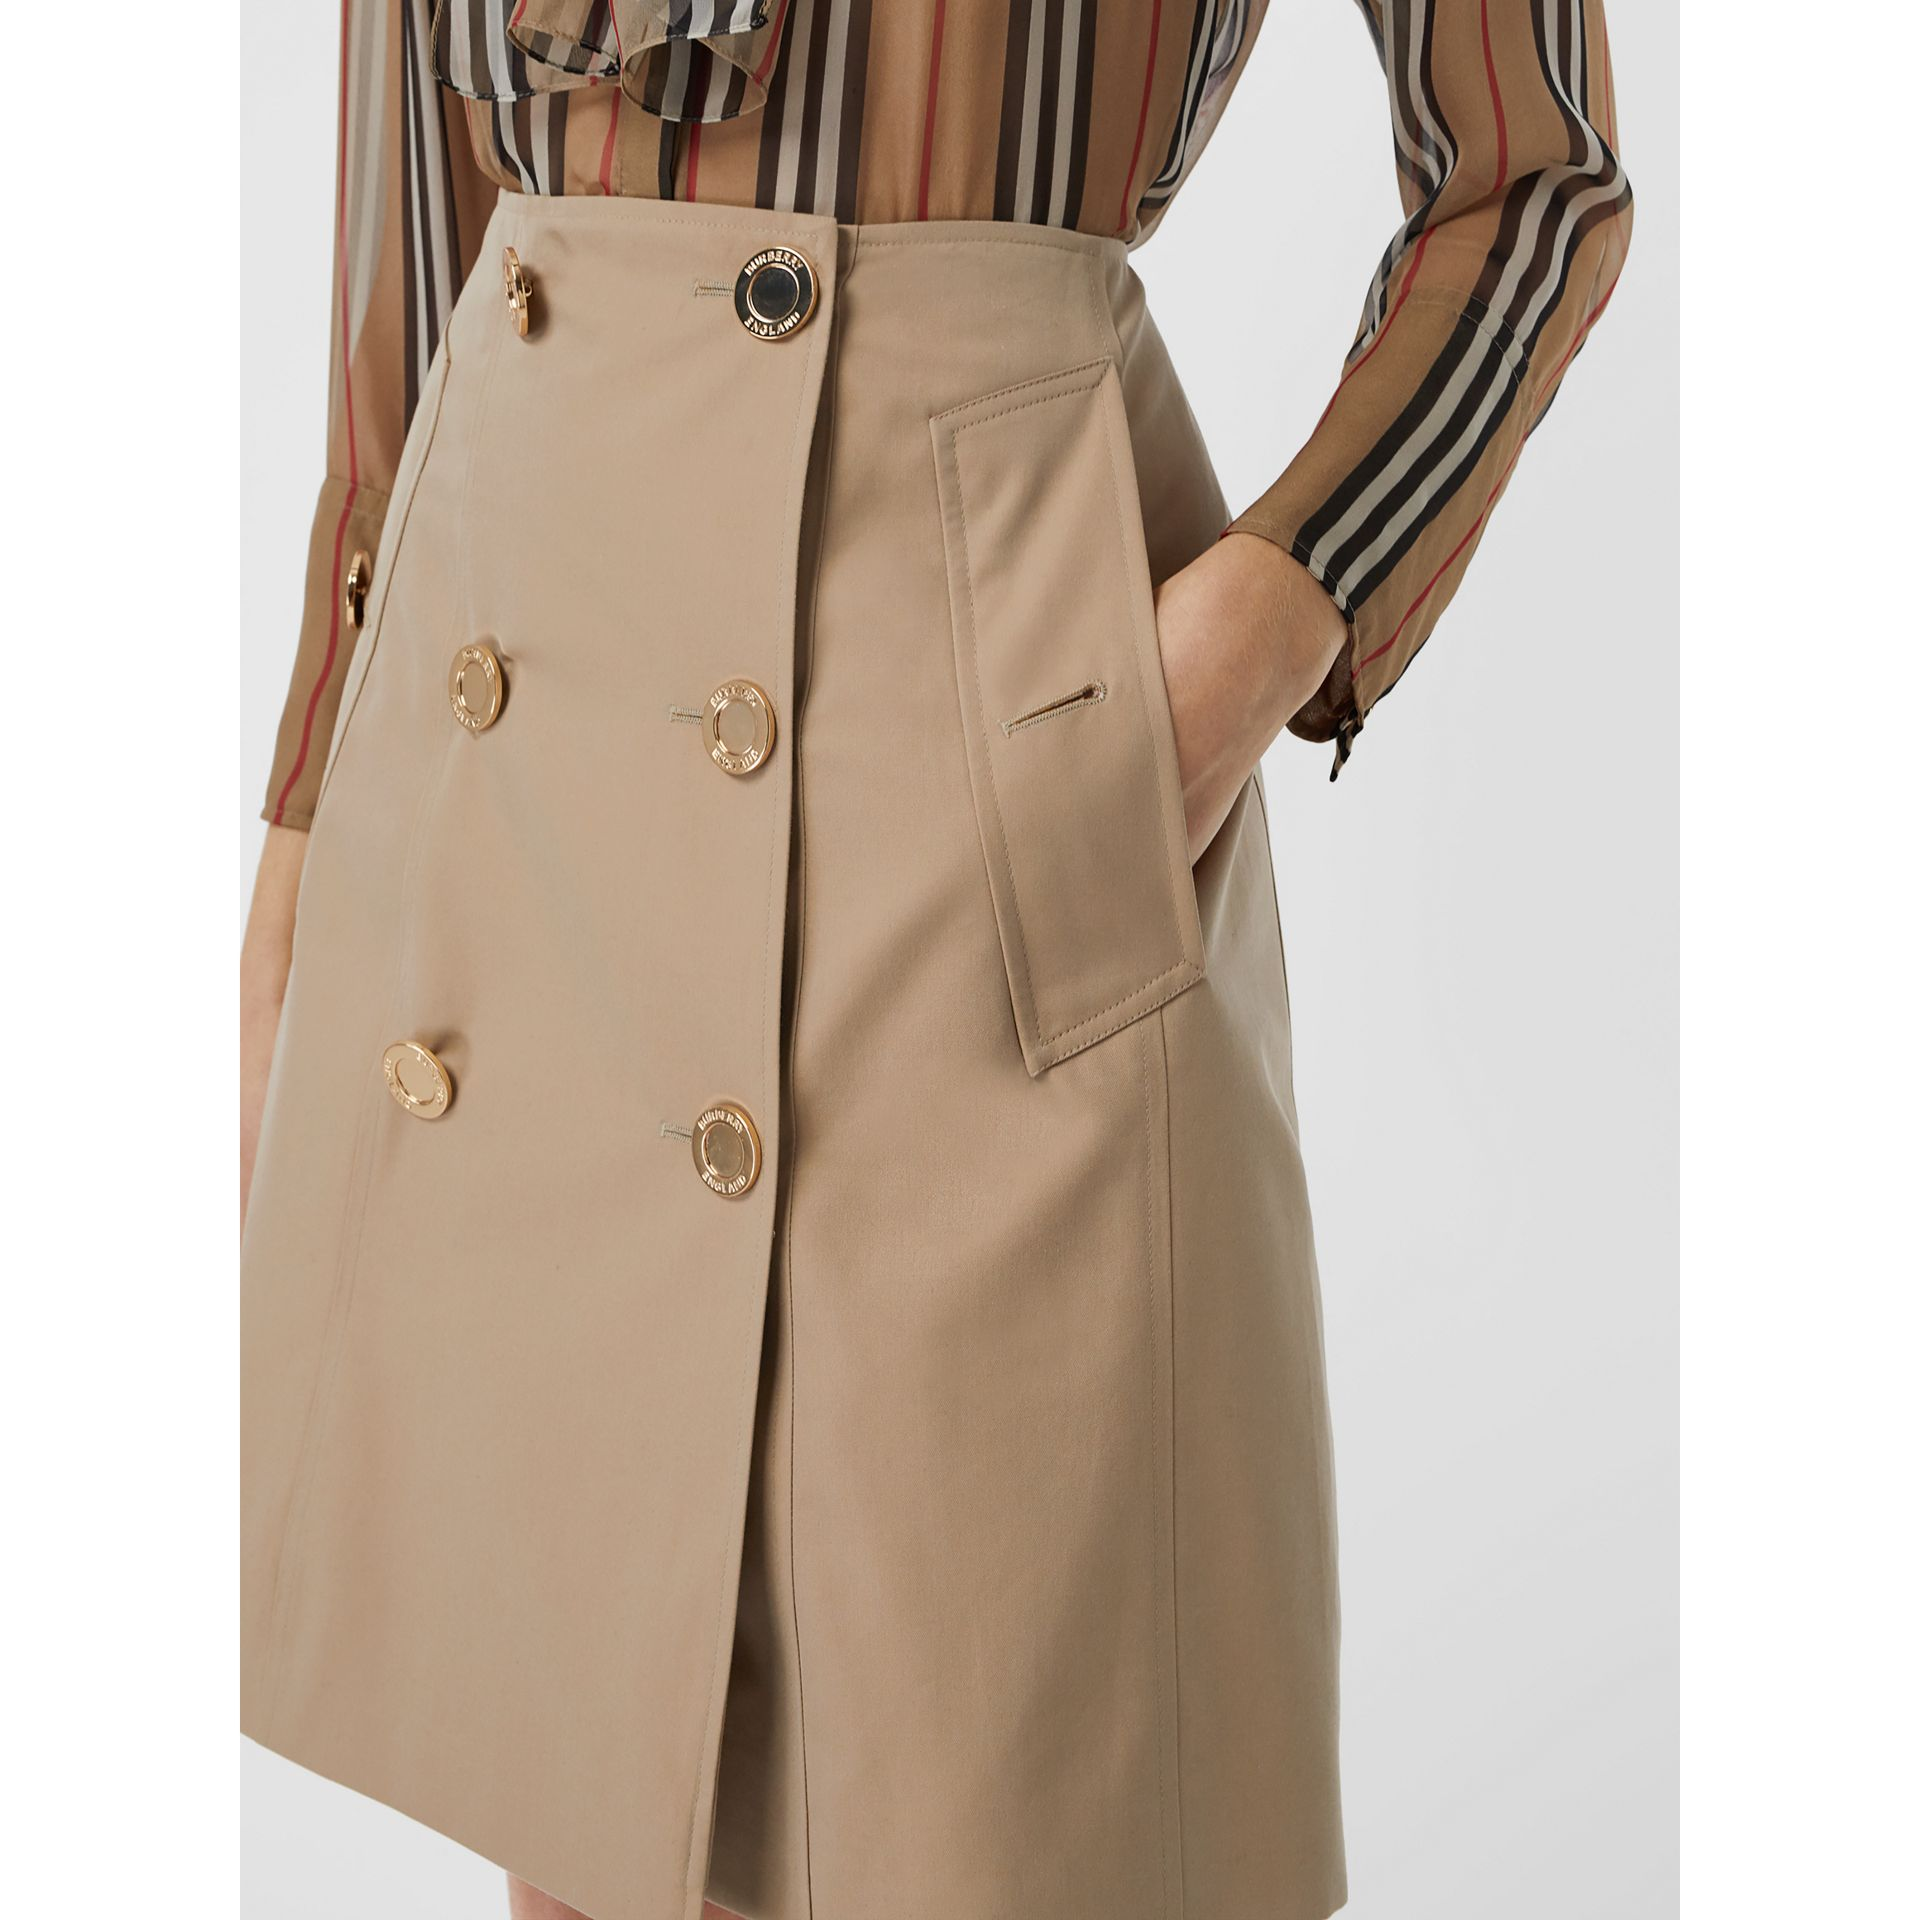 Cotton Gabardine Trench Skirt in Honey - Women | Burberry - gallery image 1